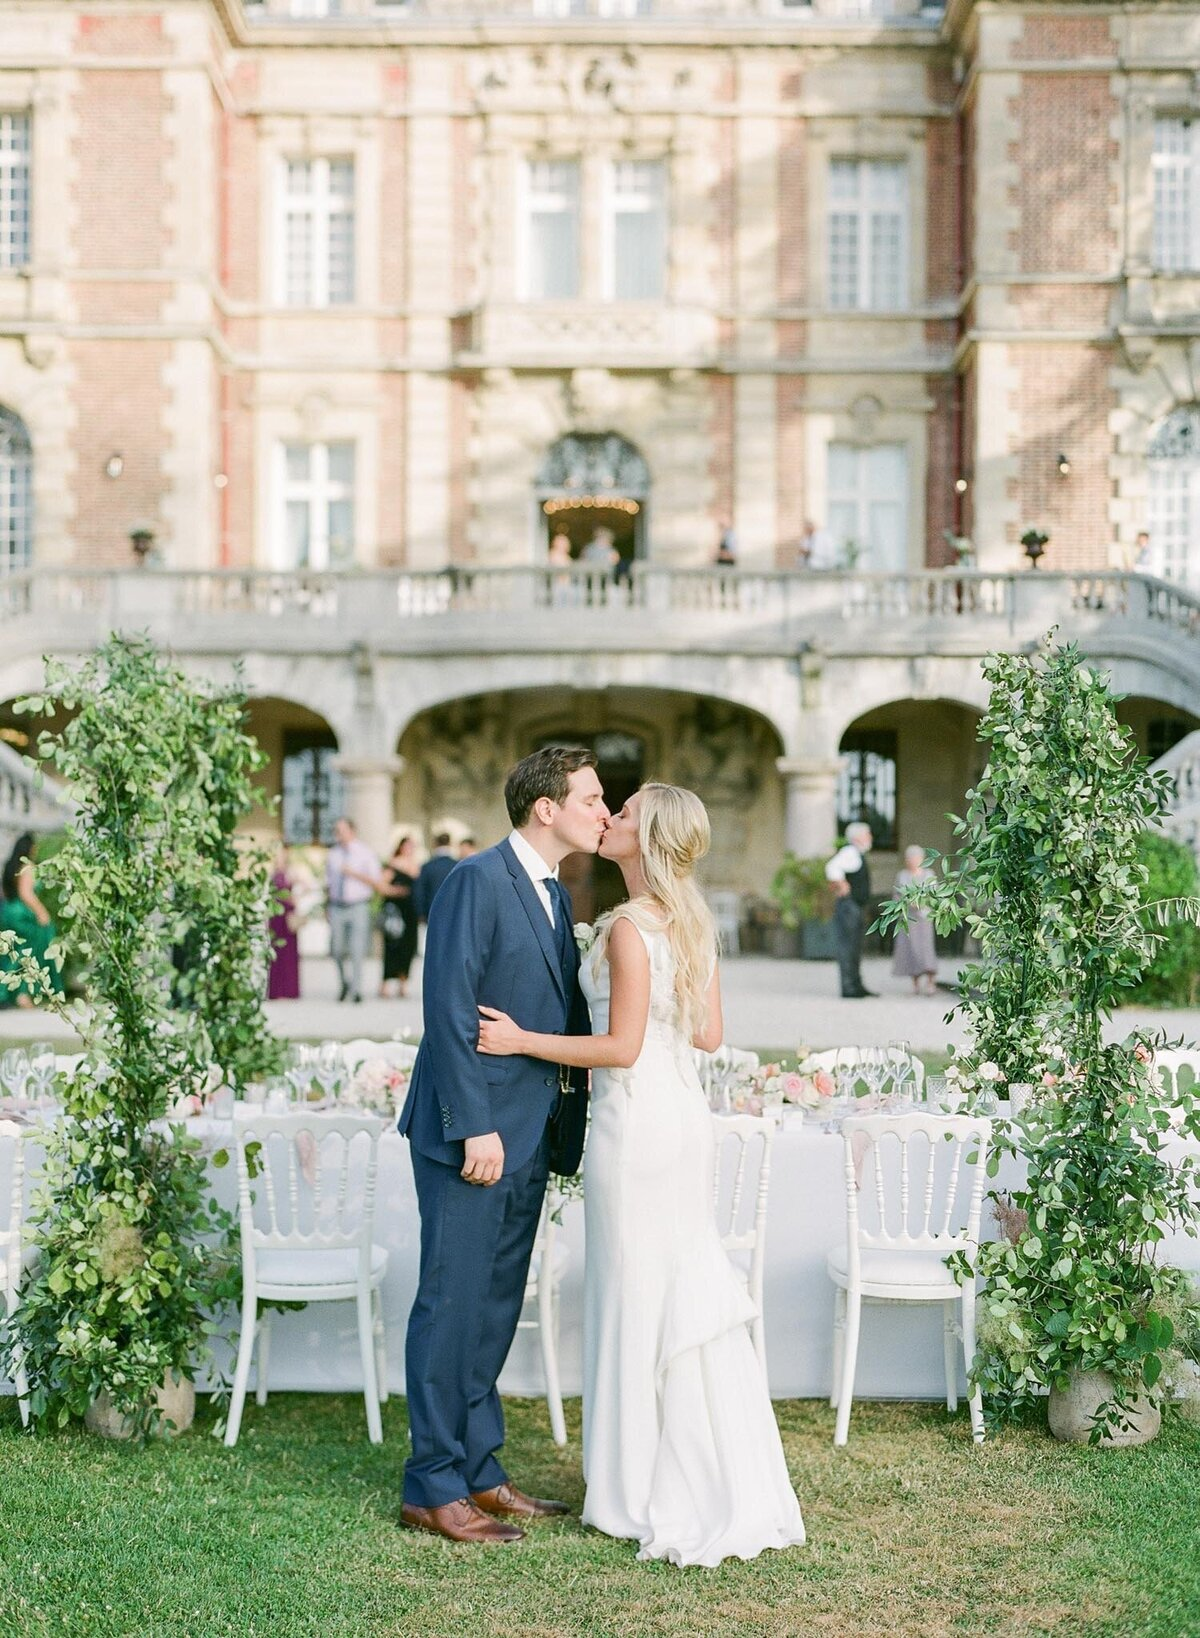 Molly-Carr-Photography-Paris-Wedding-Photographer-29